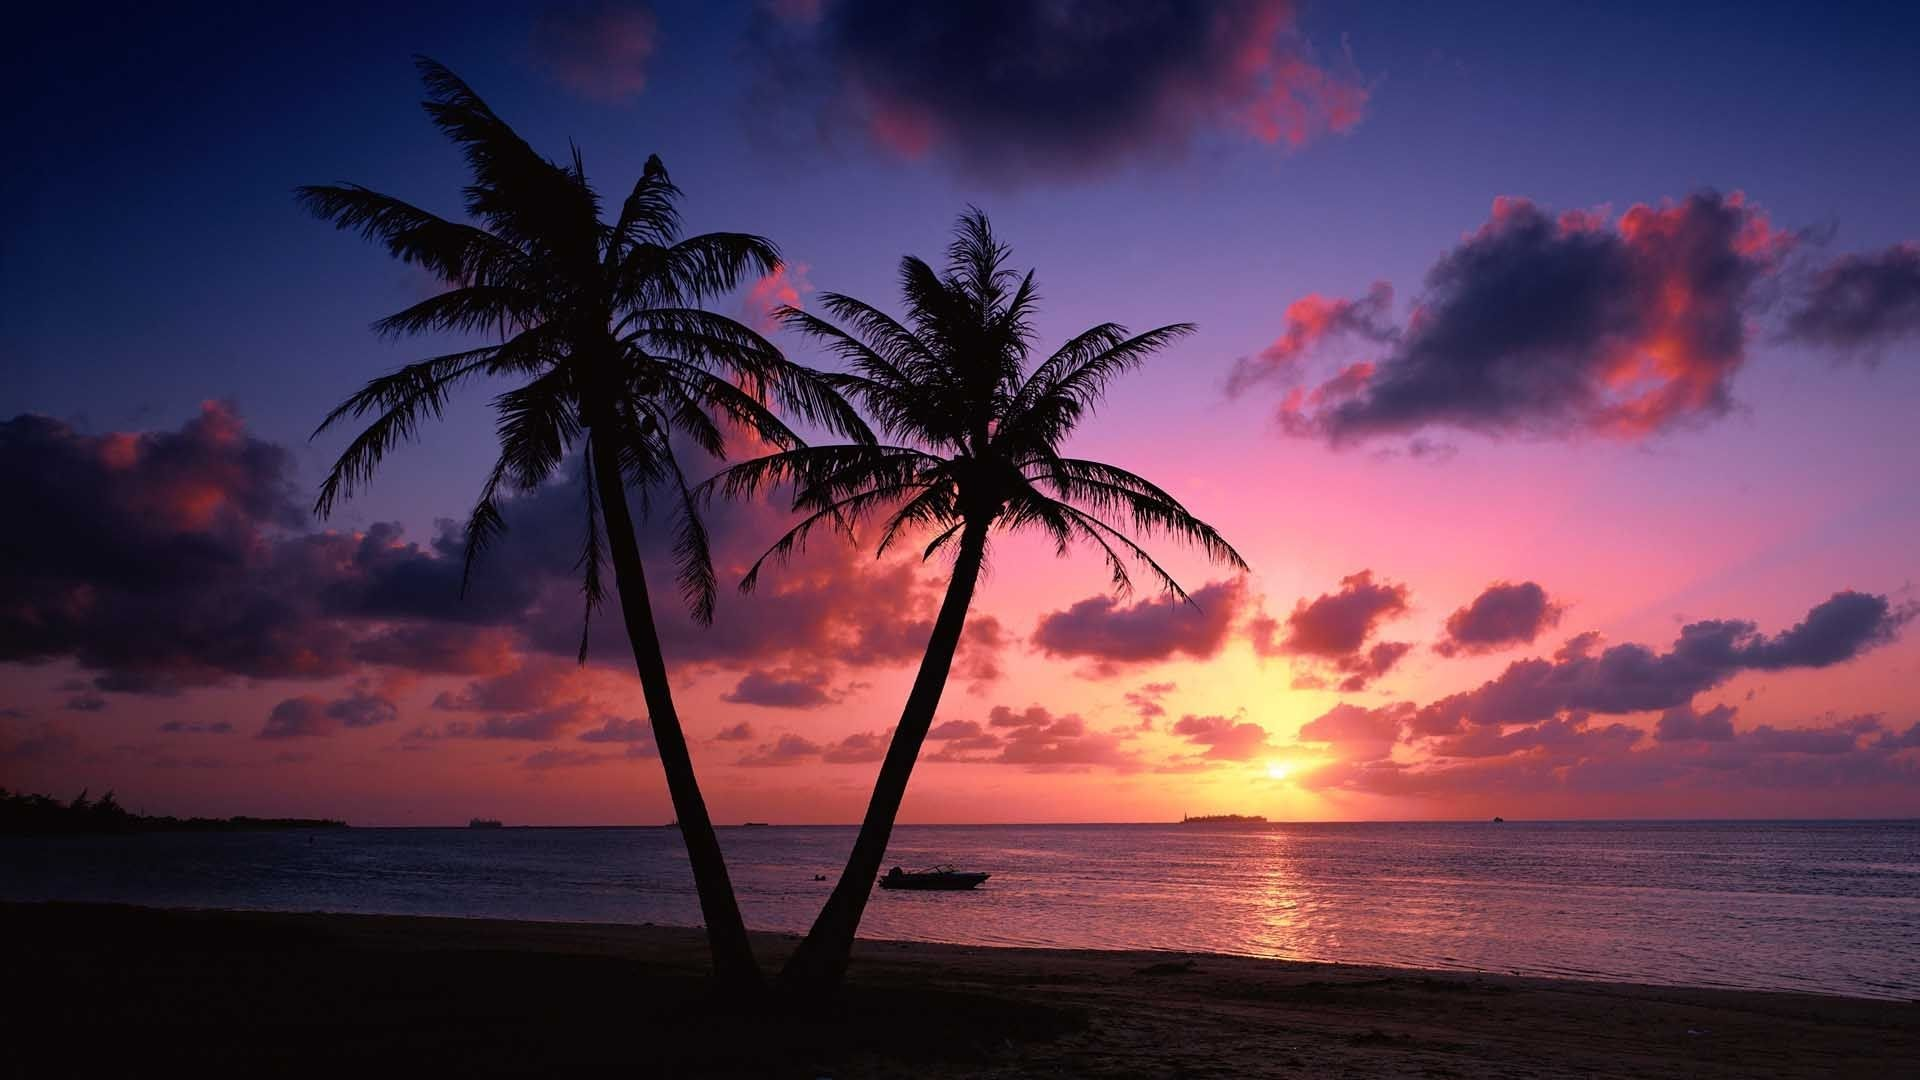 Sunset Desktop Wallpapers Top Free Sunset Desktop